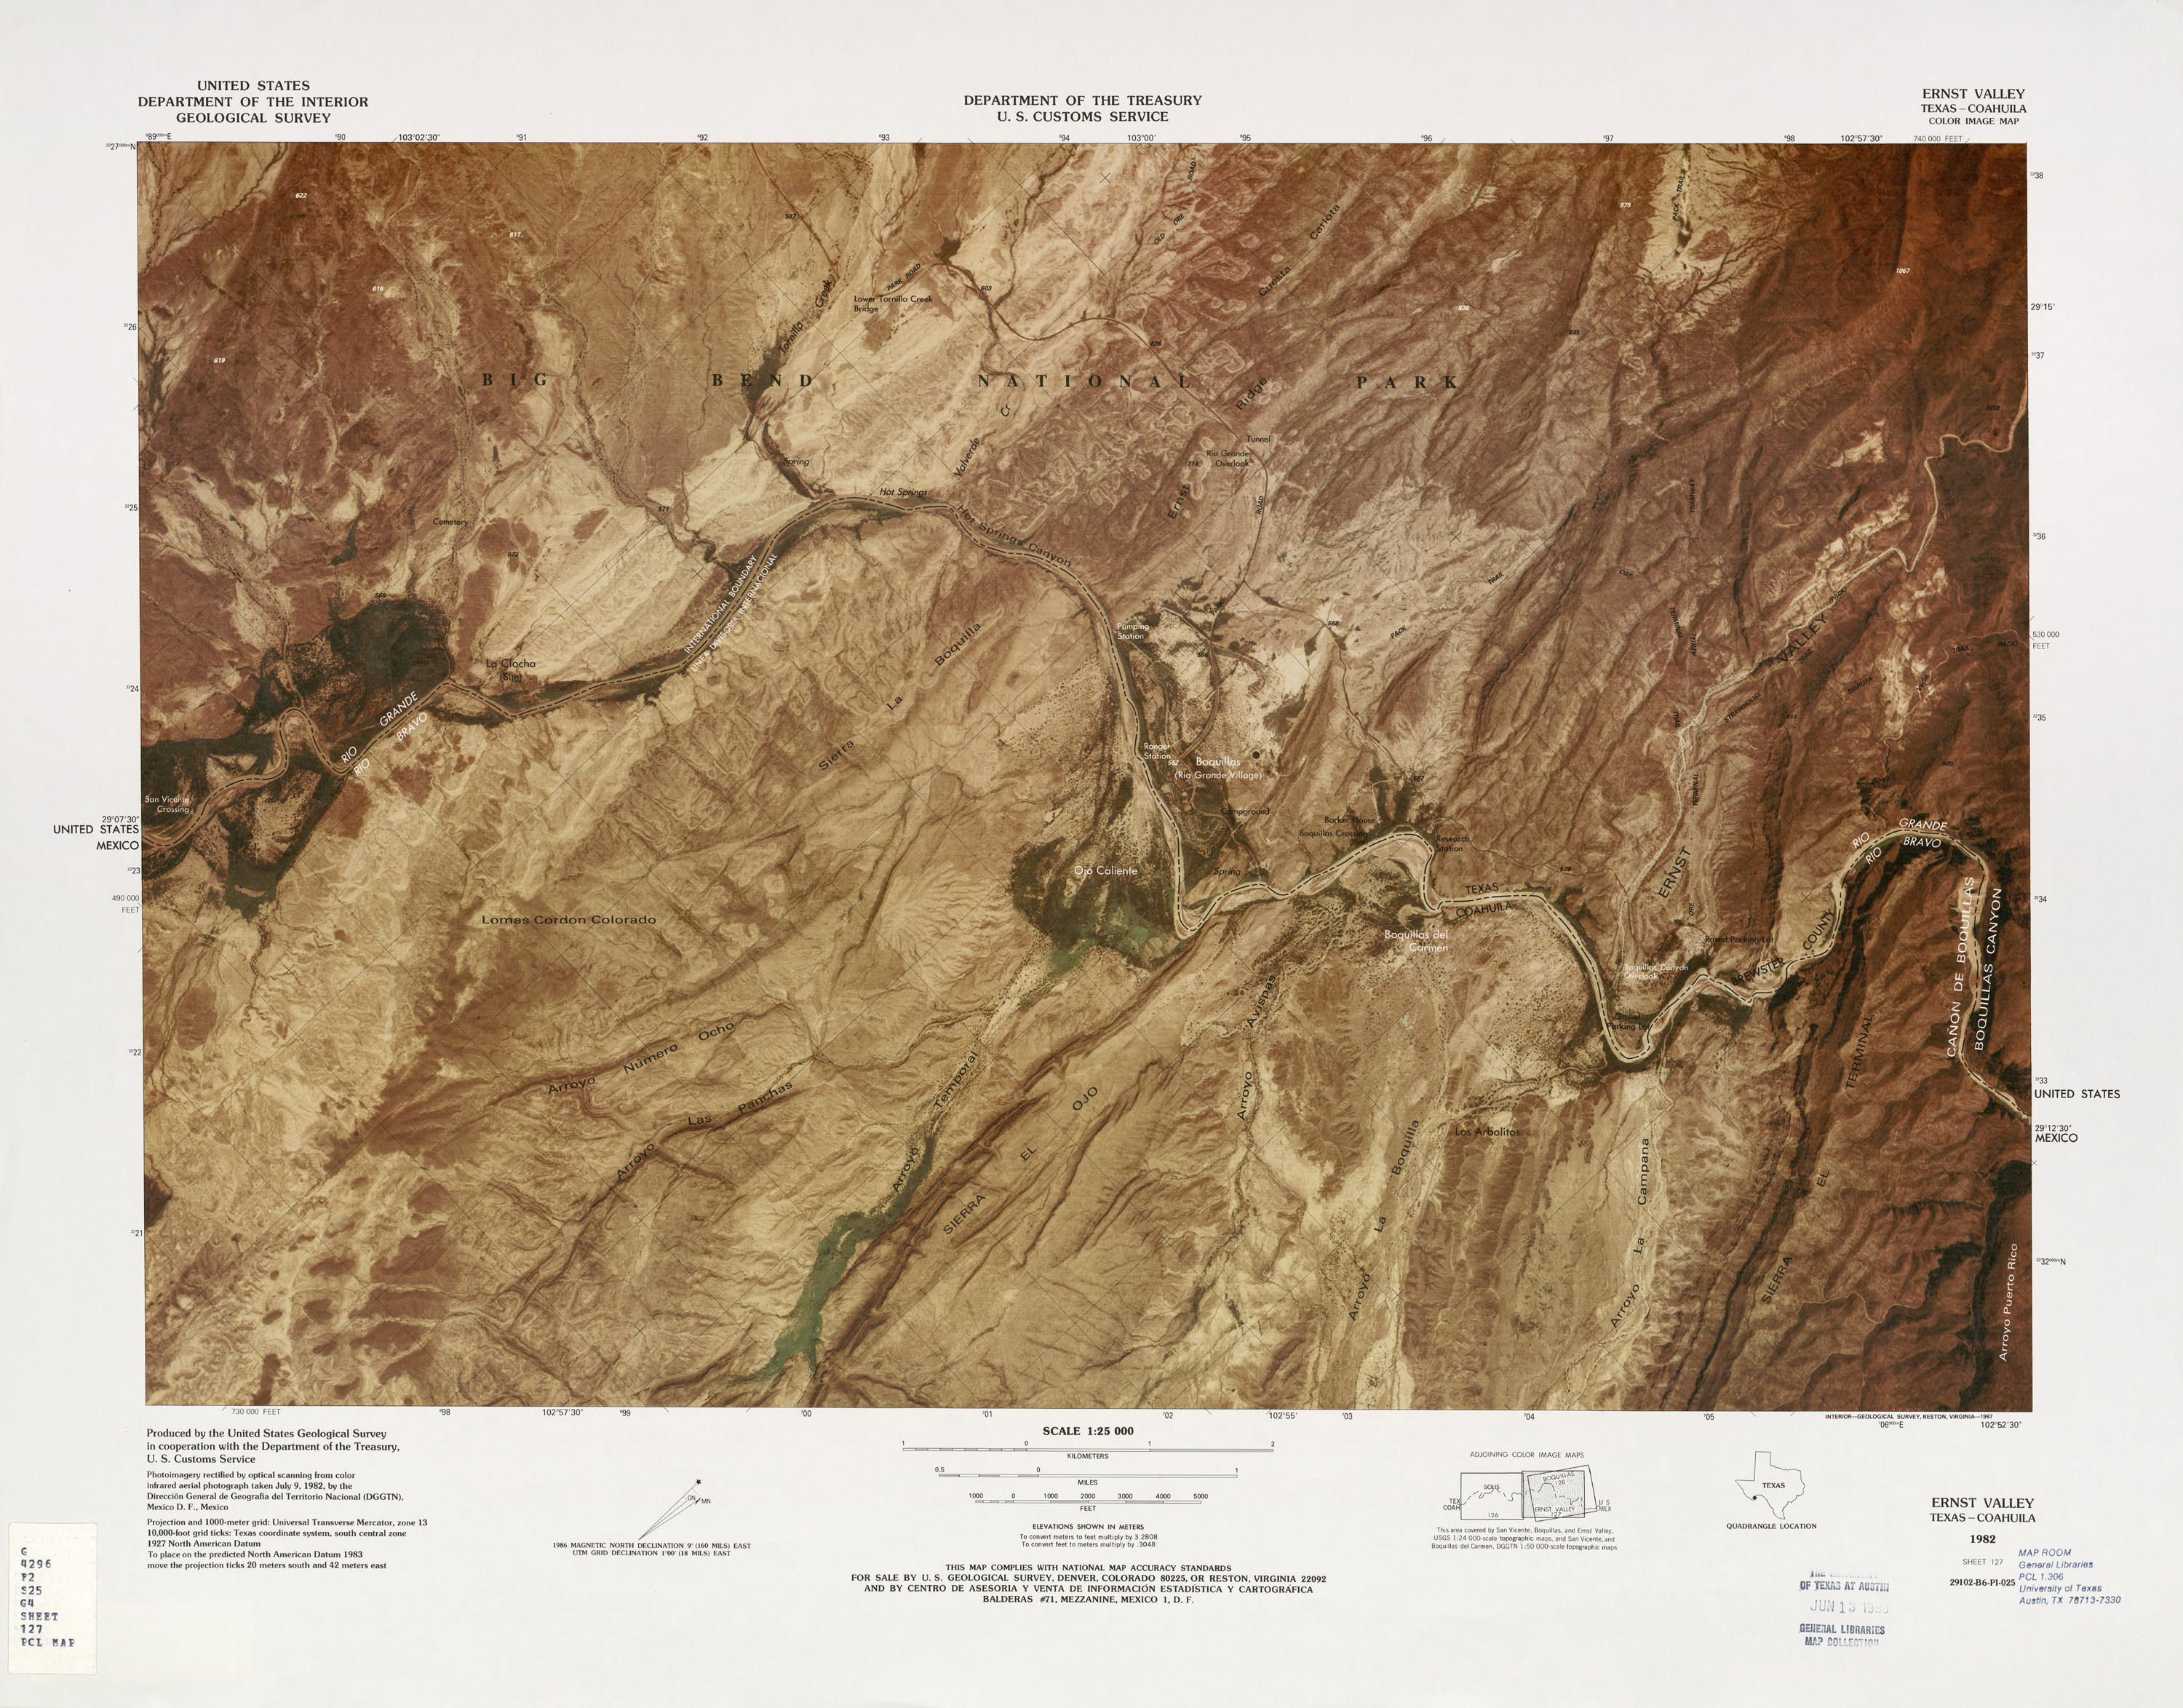 United States-Mexico Border Map, Ernst Valley